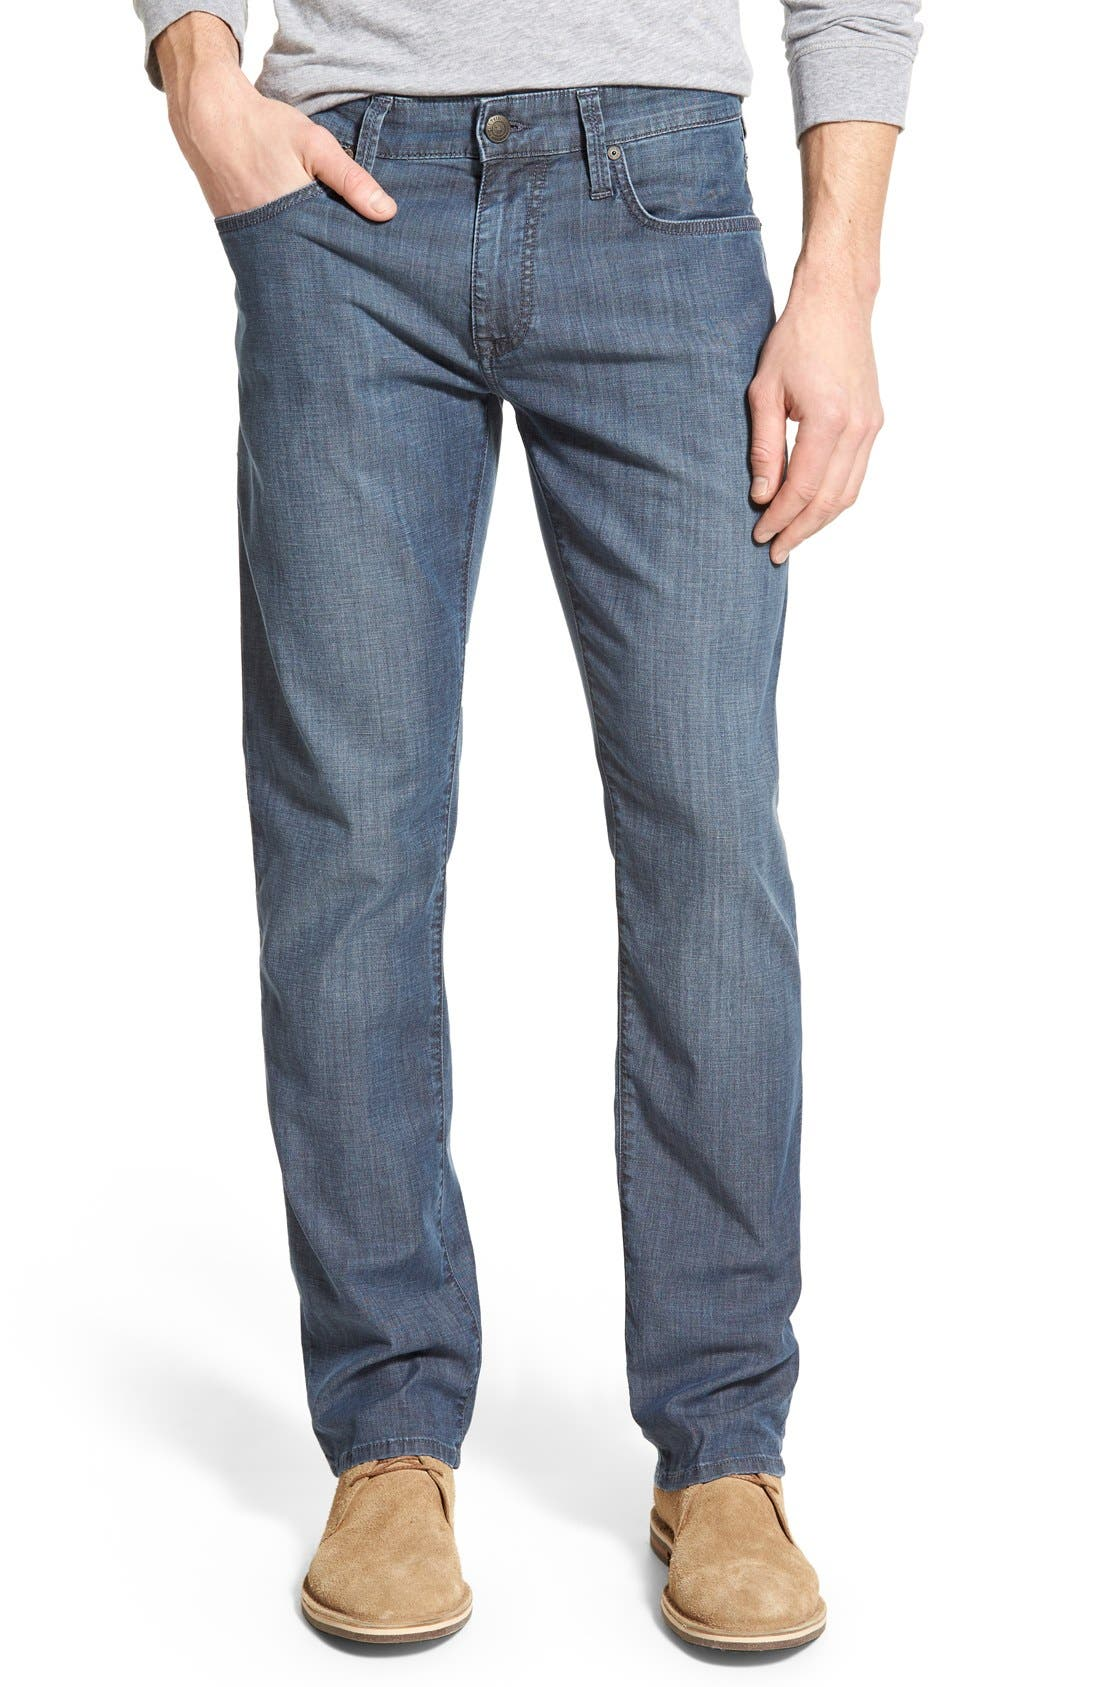 'Zach' Straight Leg Jeans,                         Main,                         color, Chambray